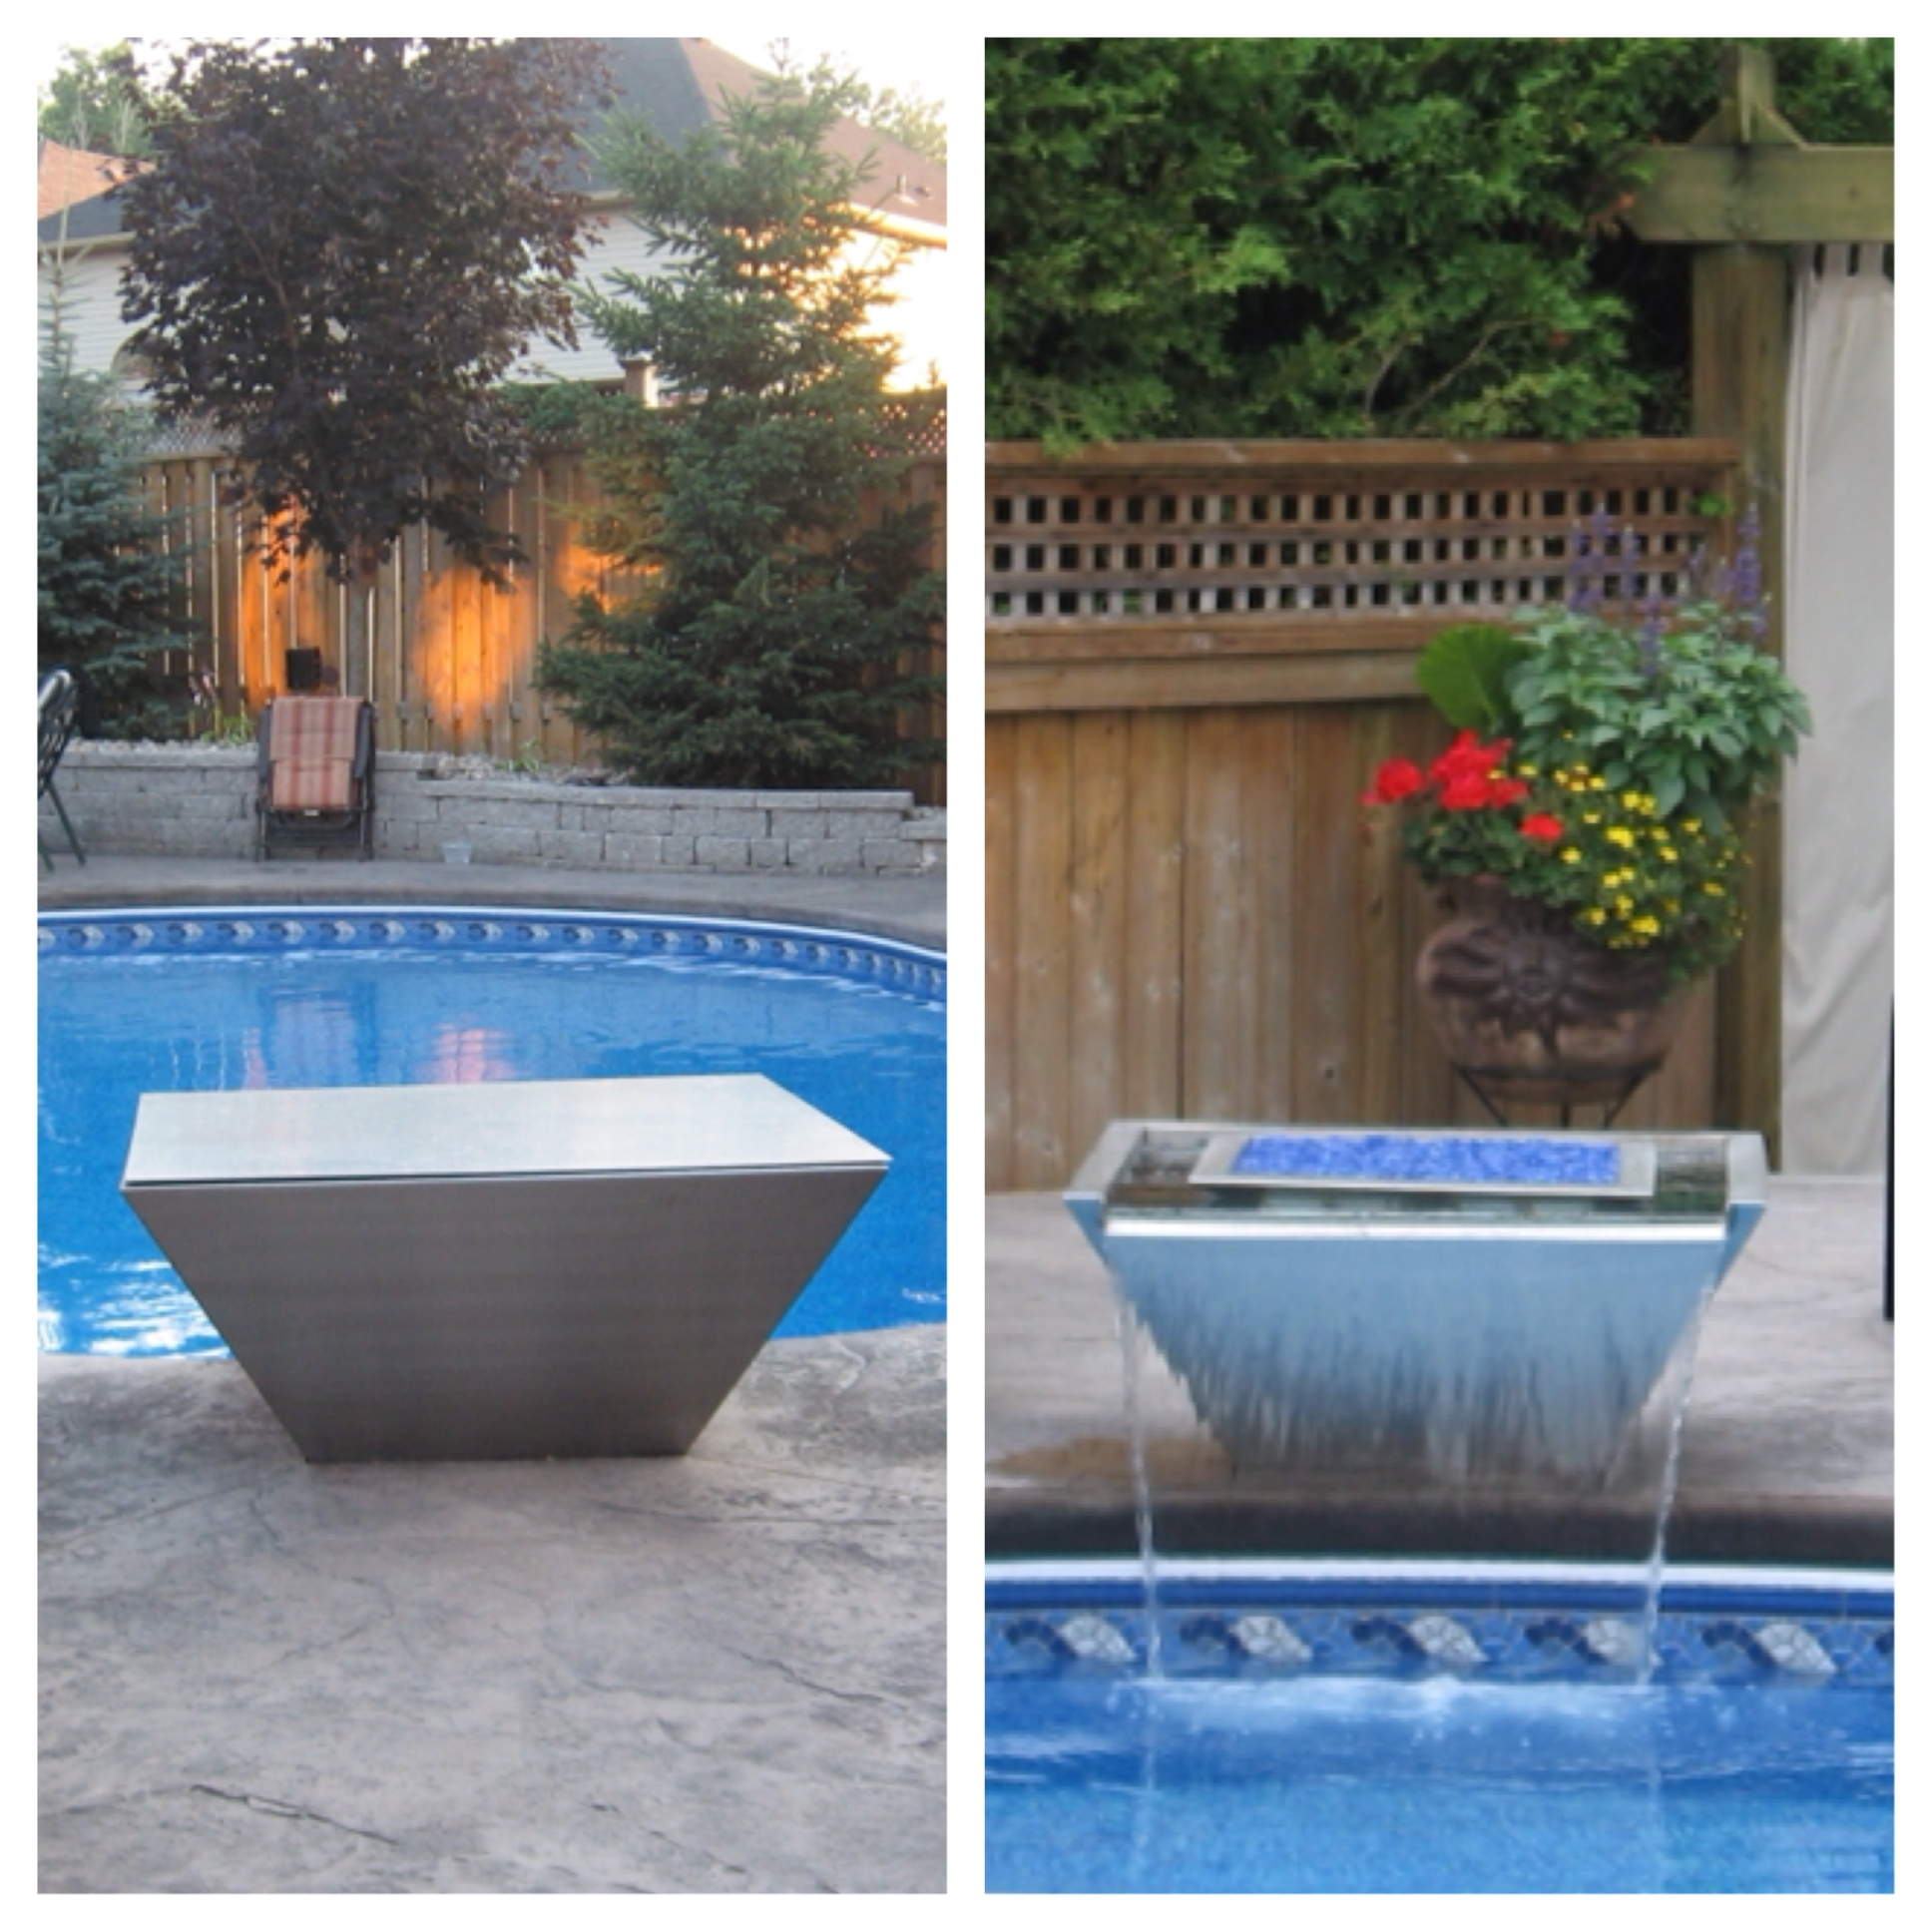 waterfire bowl with cover.JPG